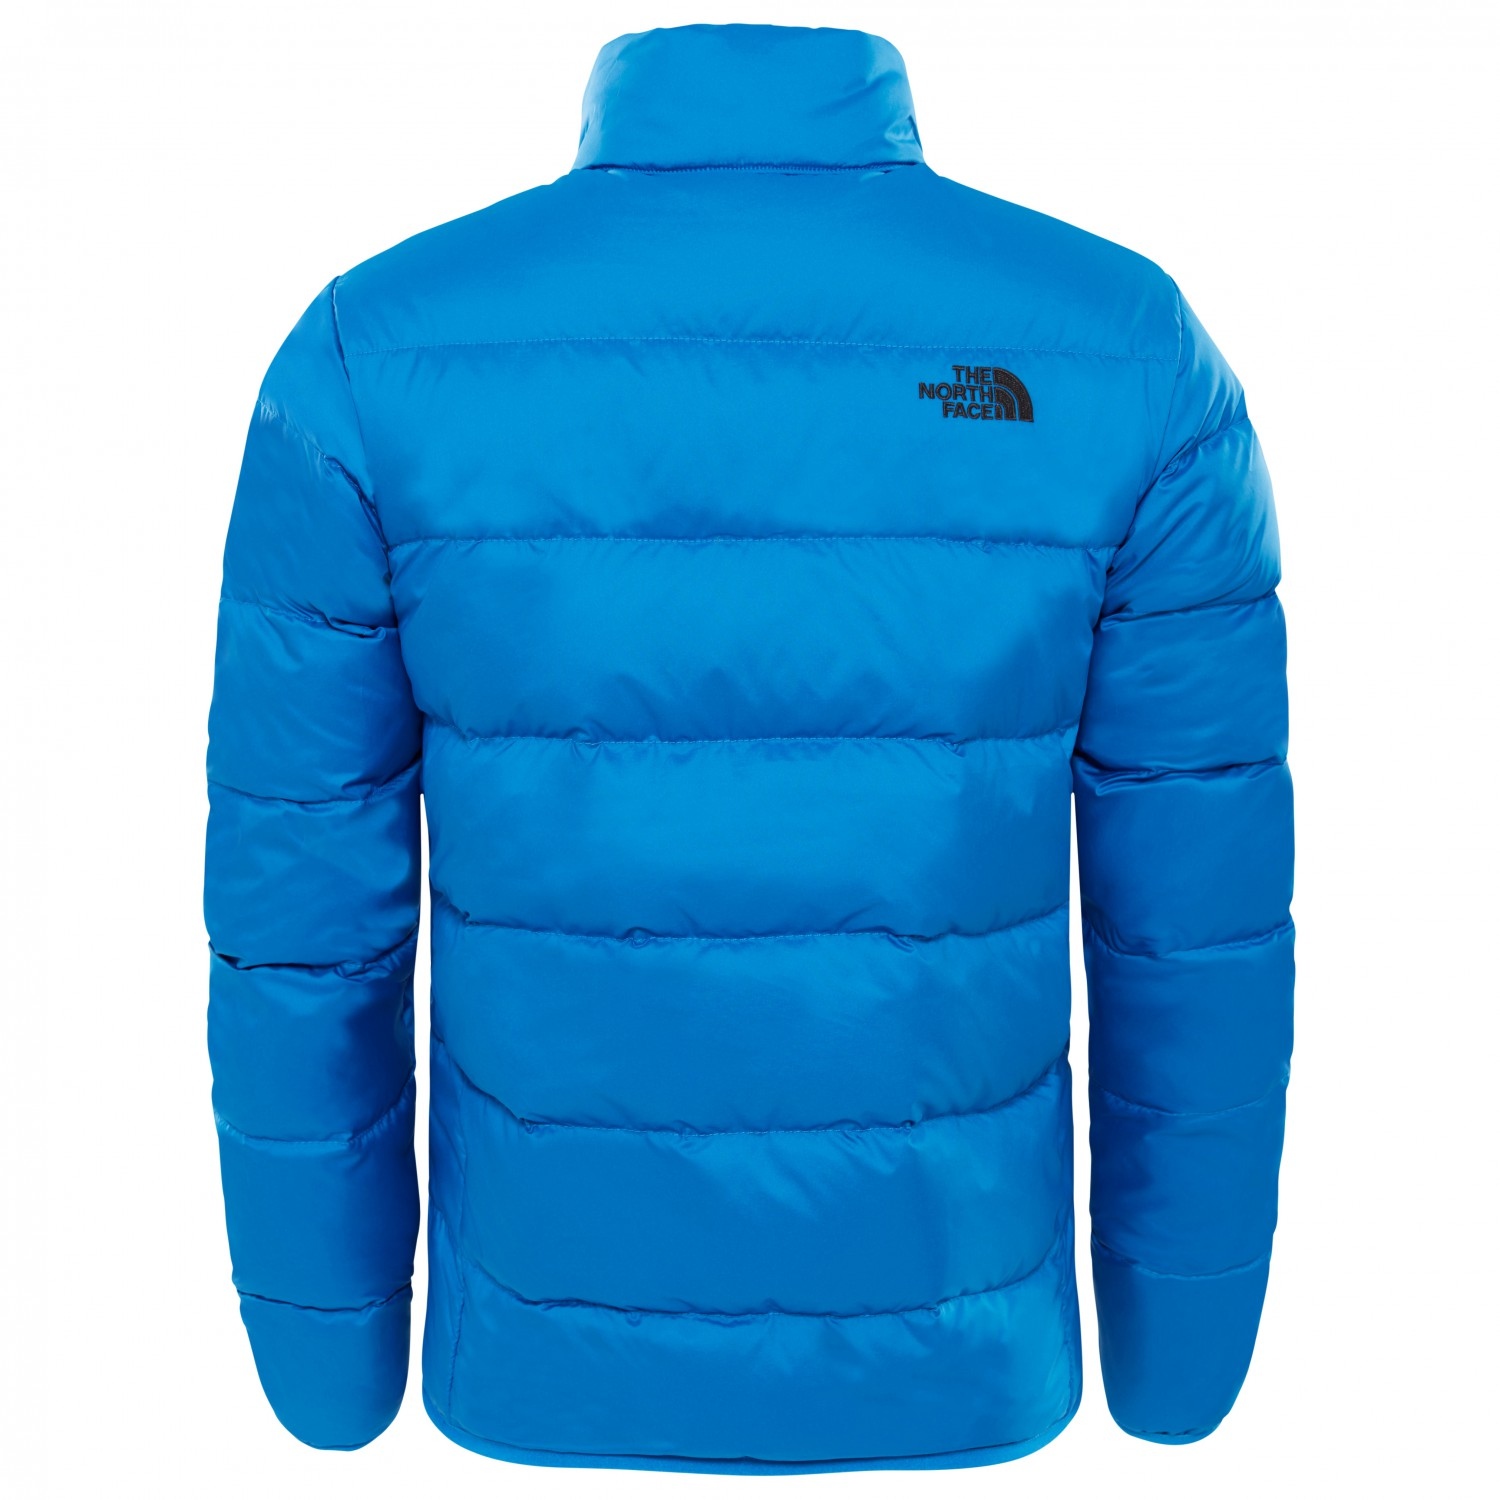 The North Face Boy's Andes Jacket Daunenjacke